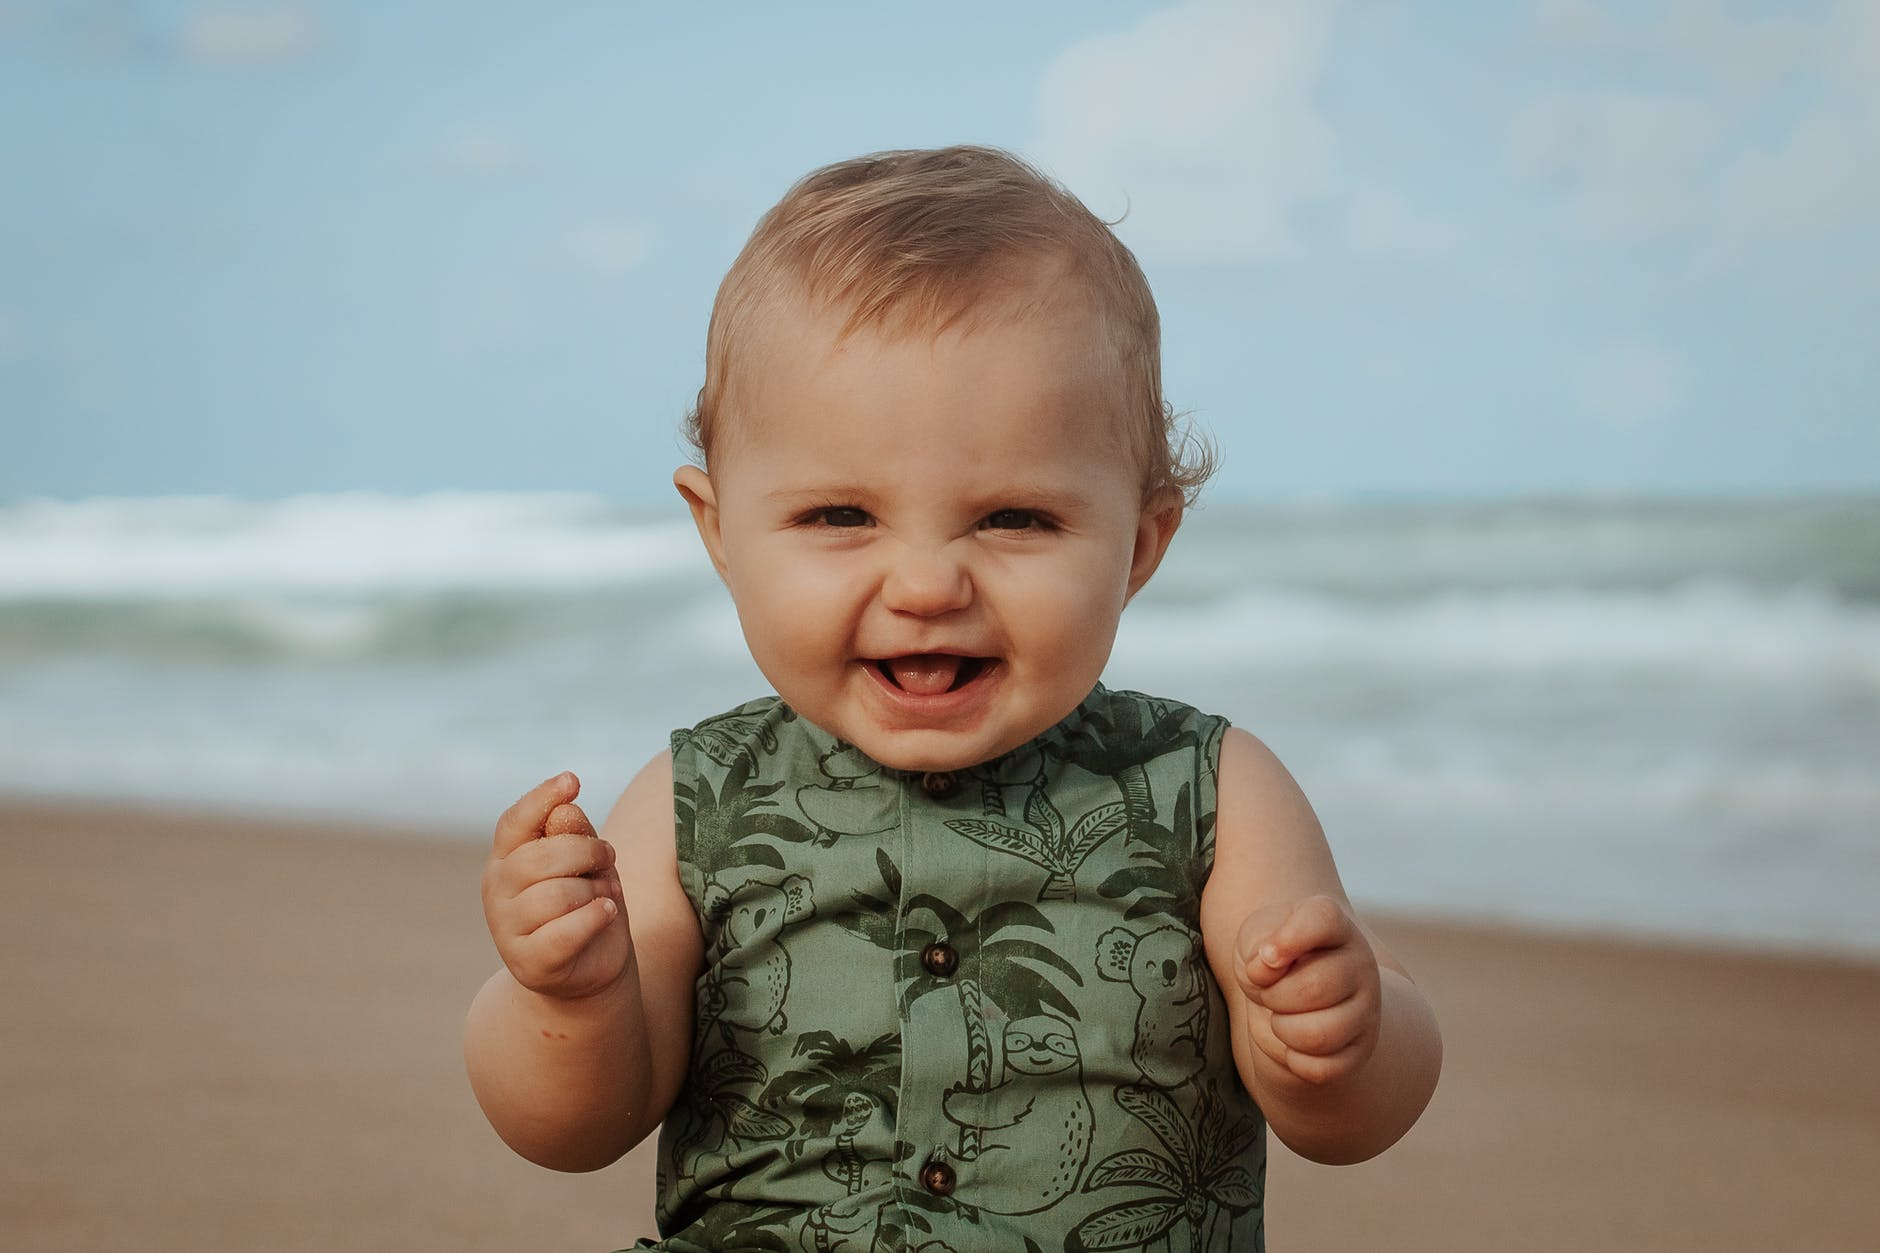 A baby smiling on the beach